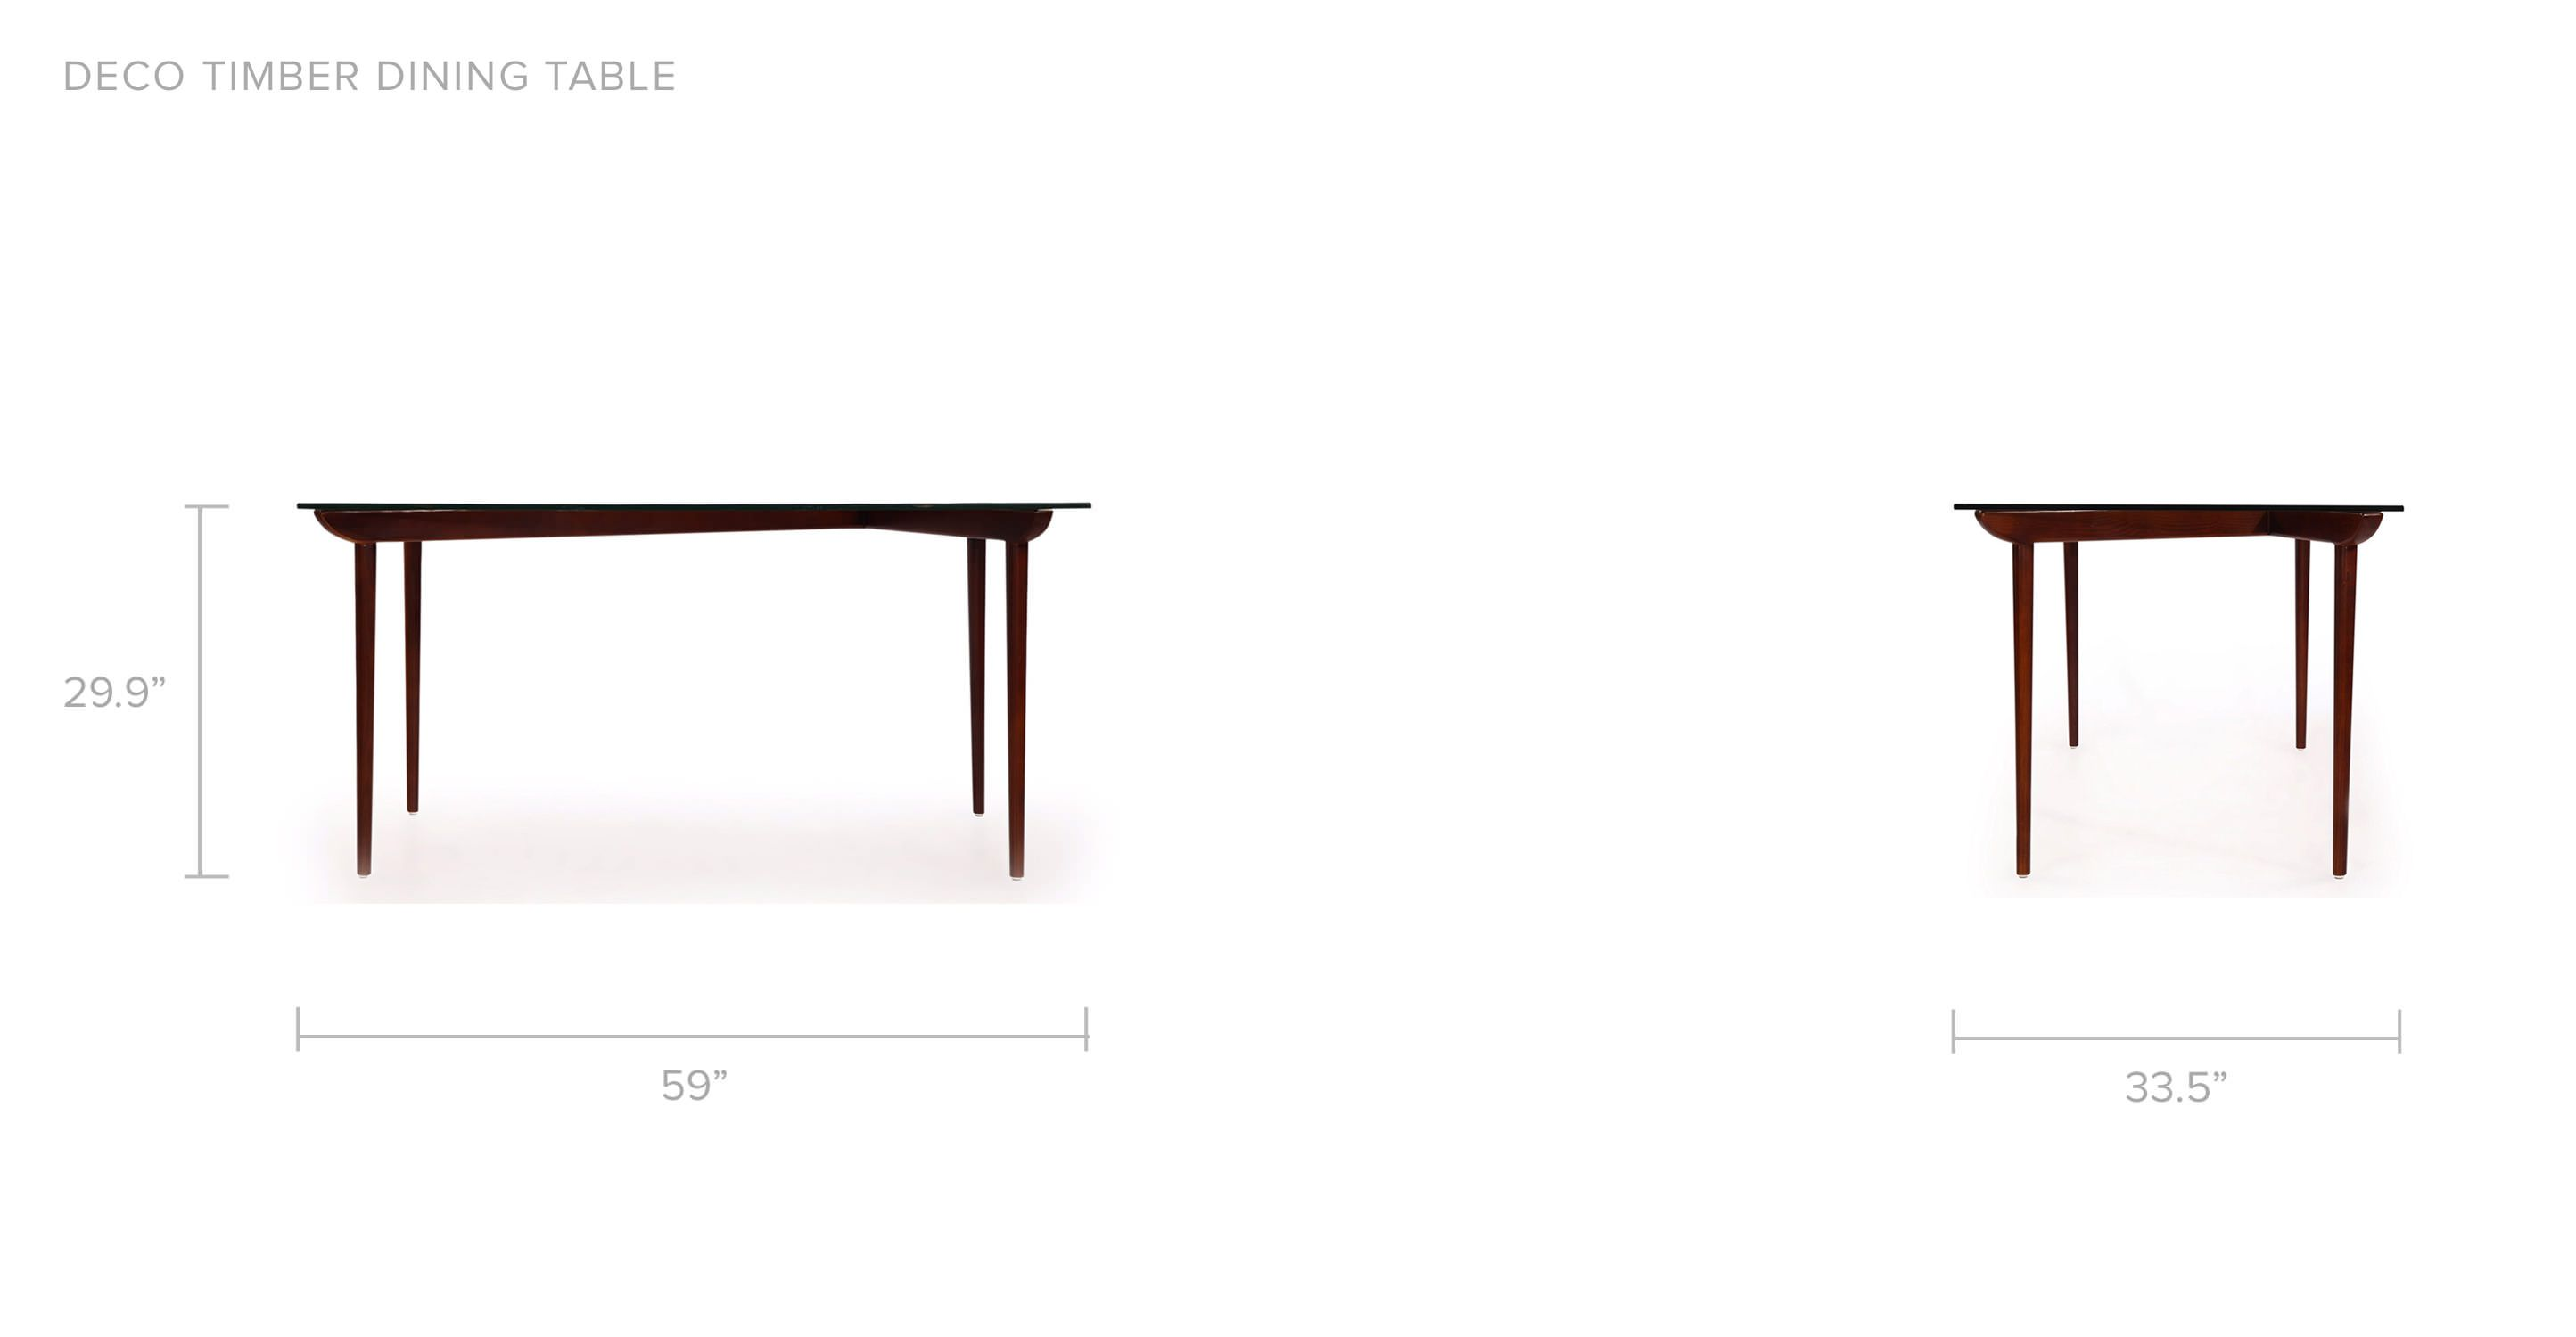 drawings-decotimber-table.jpg